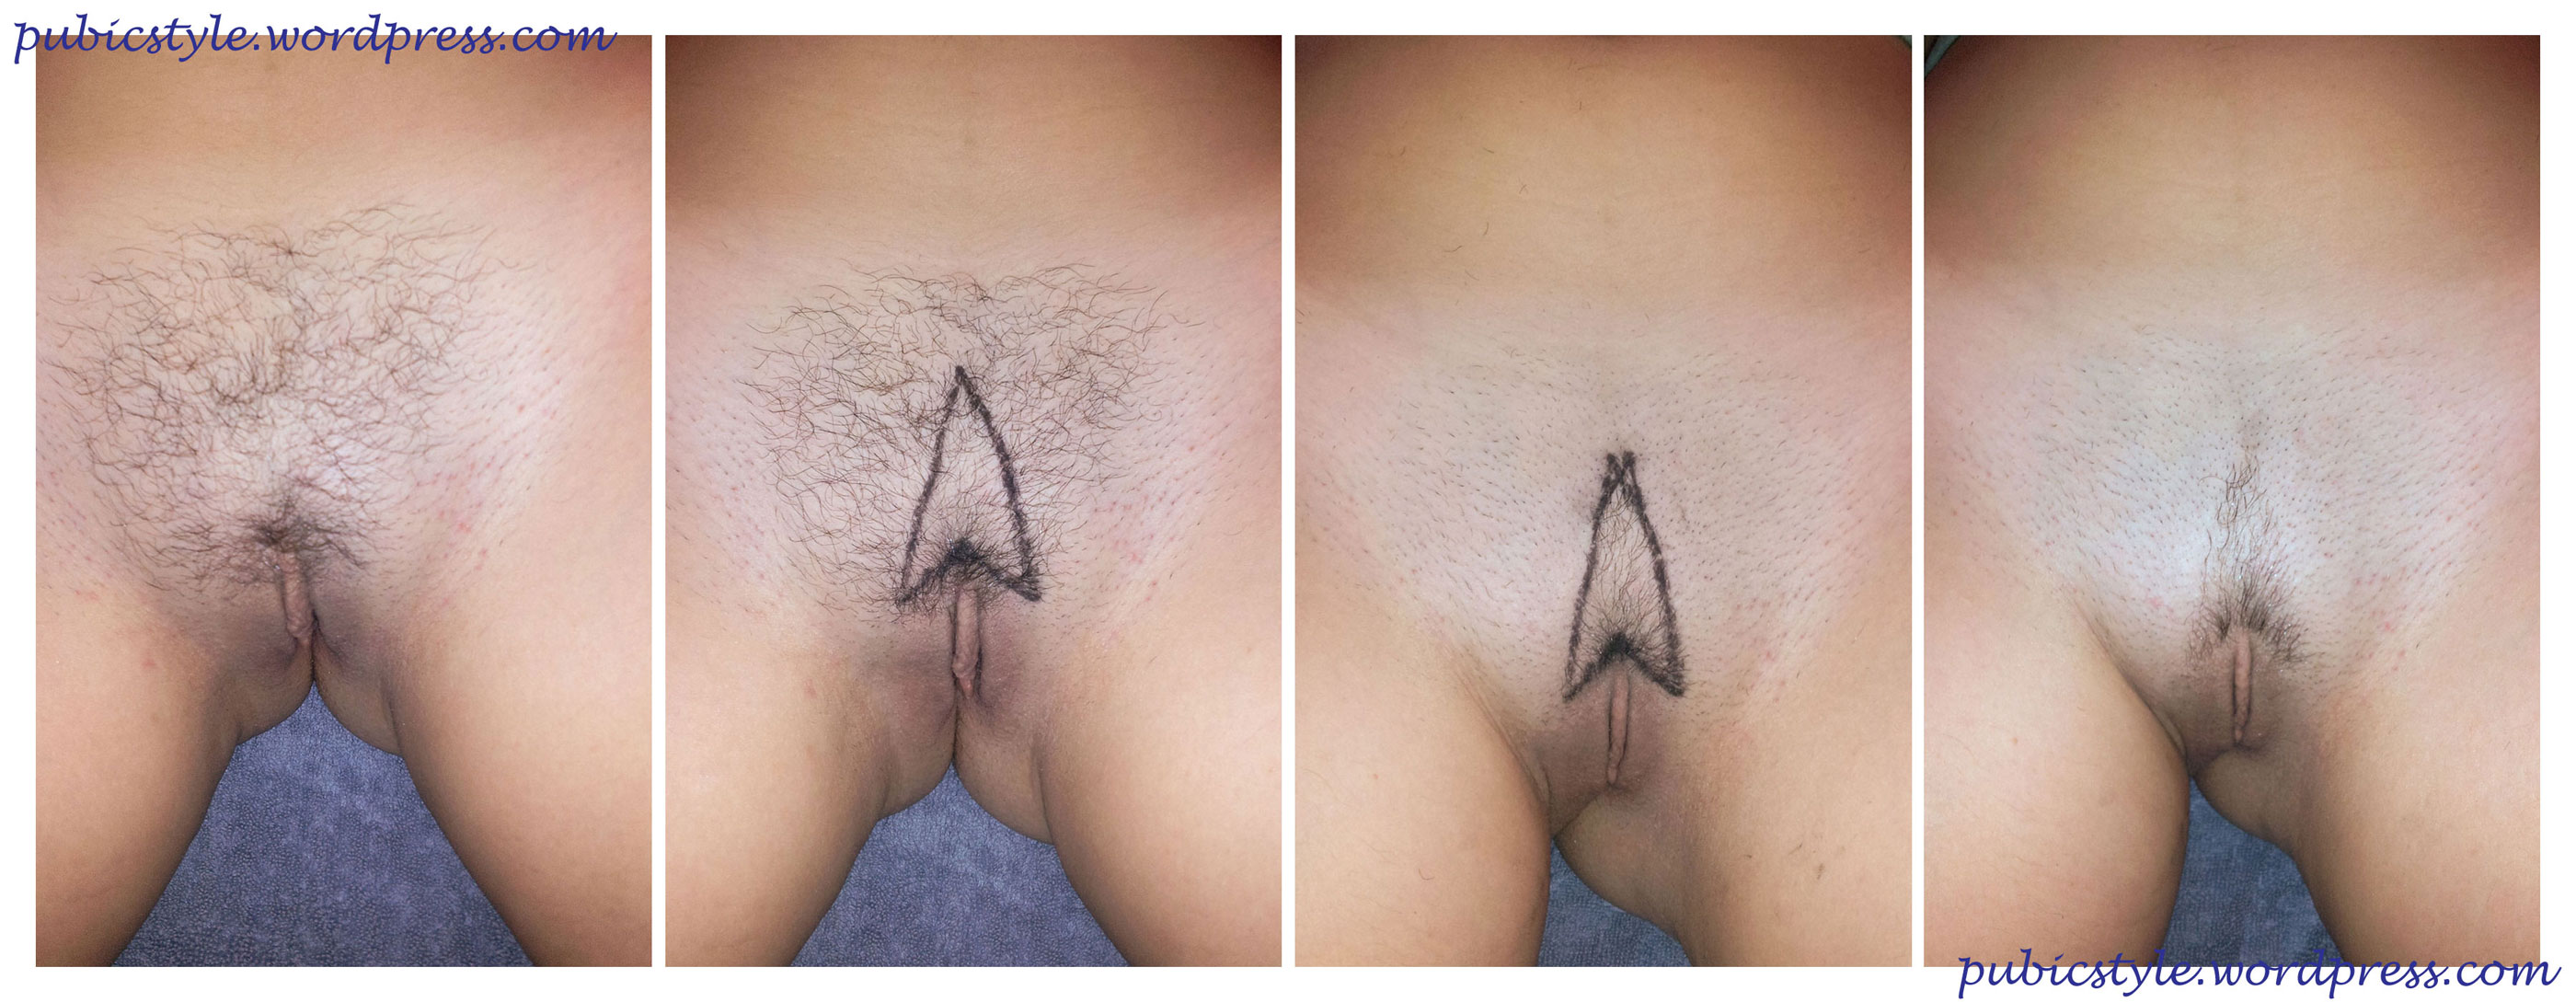 Female pubic hair styles